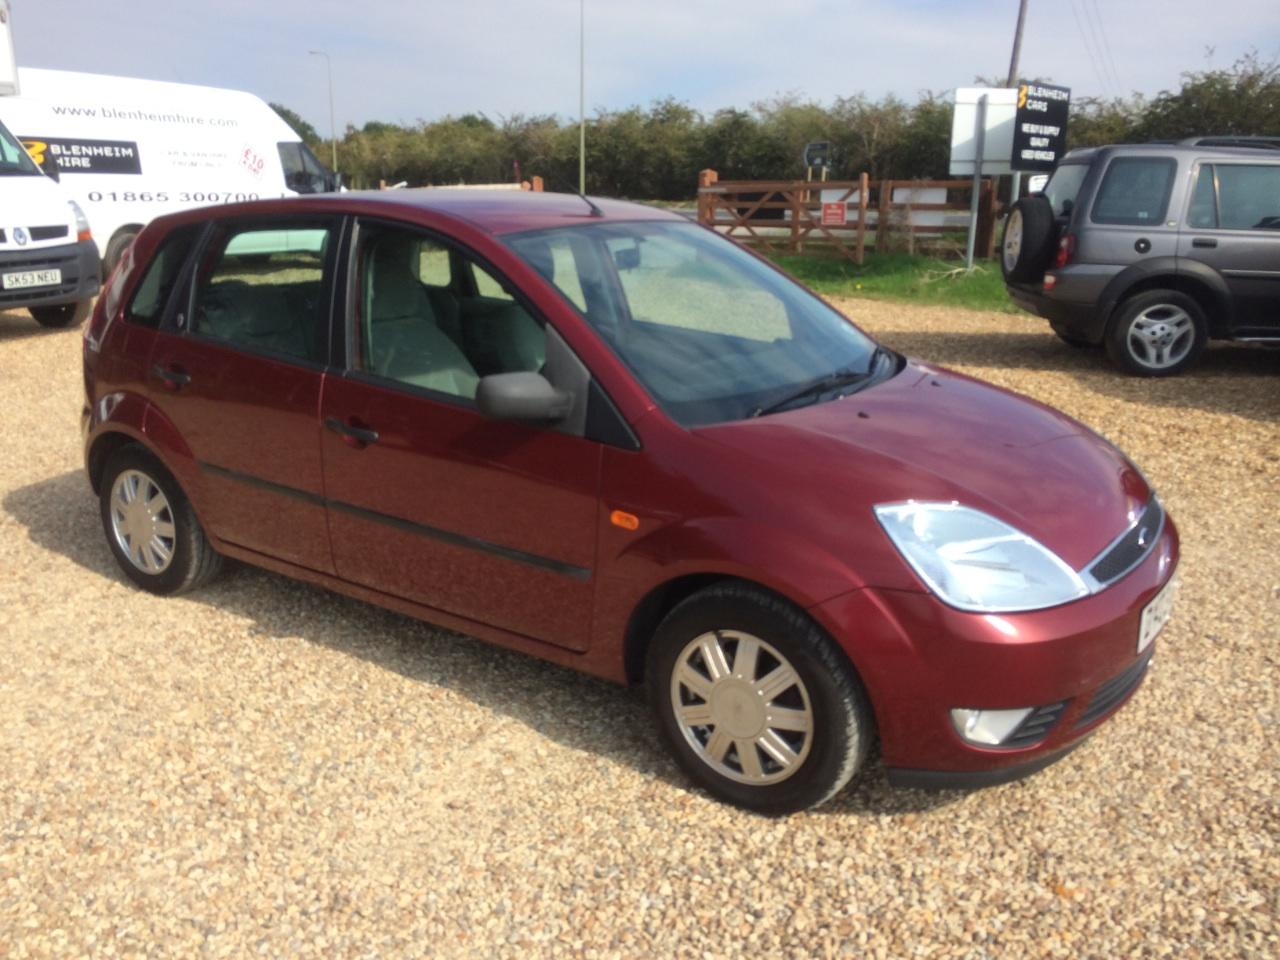 Ford Fiesta 1.4 GHIA 5DR AUTO LONG MOT LOW MILEAGE RELIABLE CAR Hatchback Petrol Red